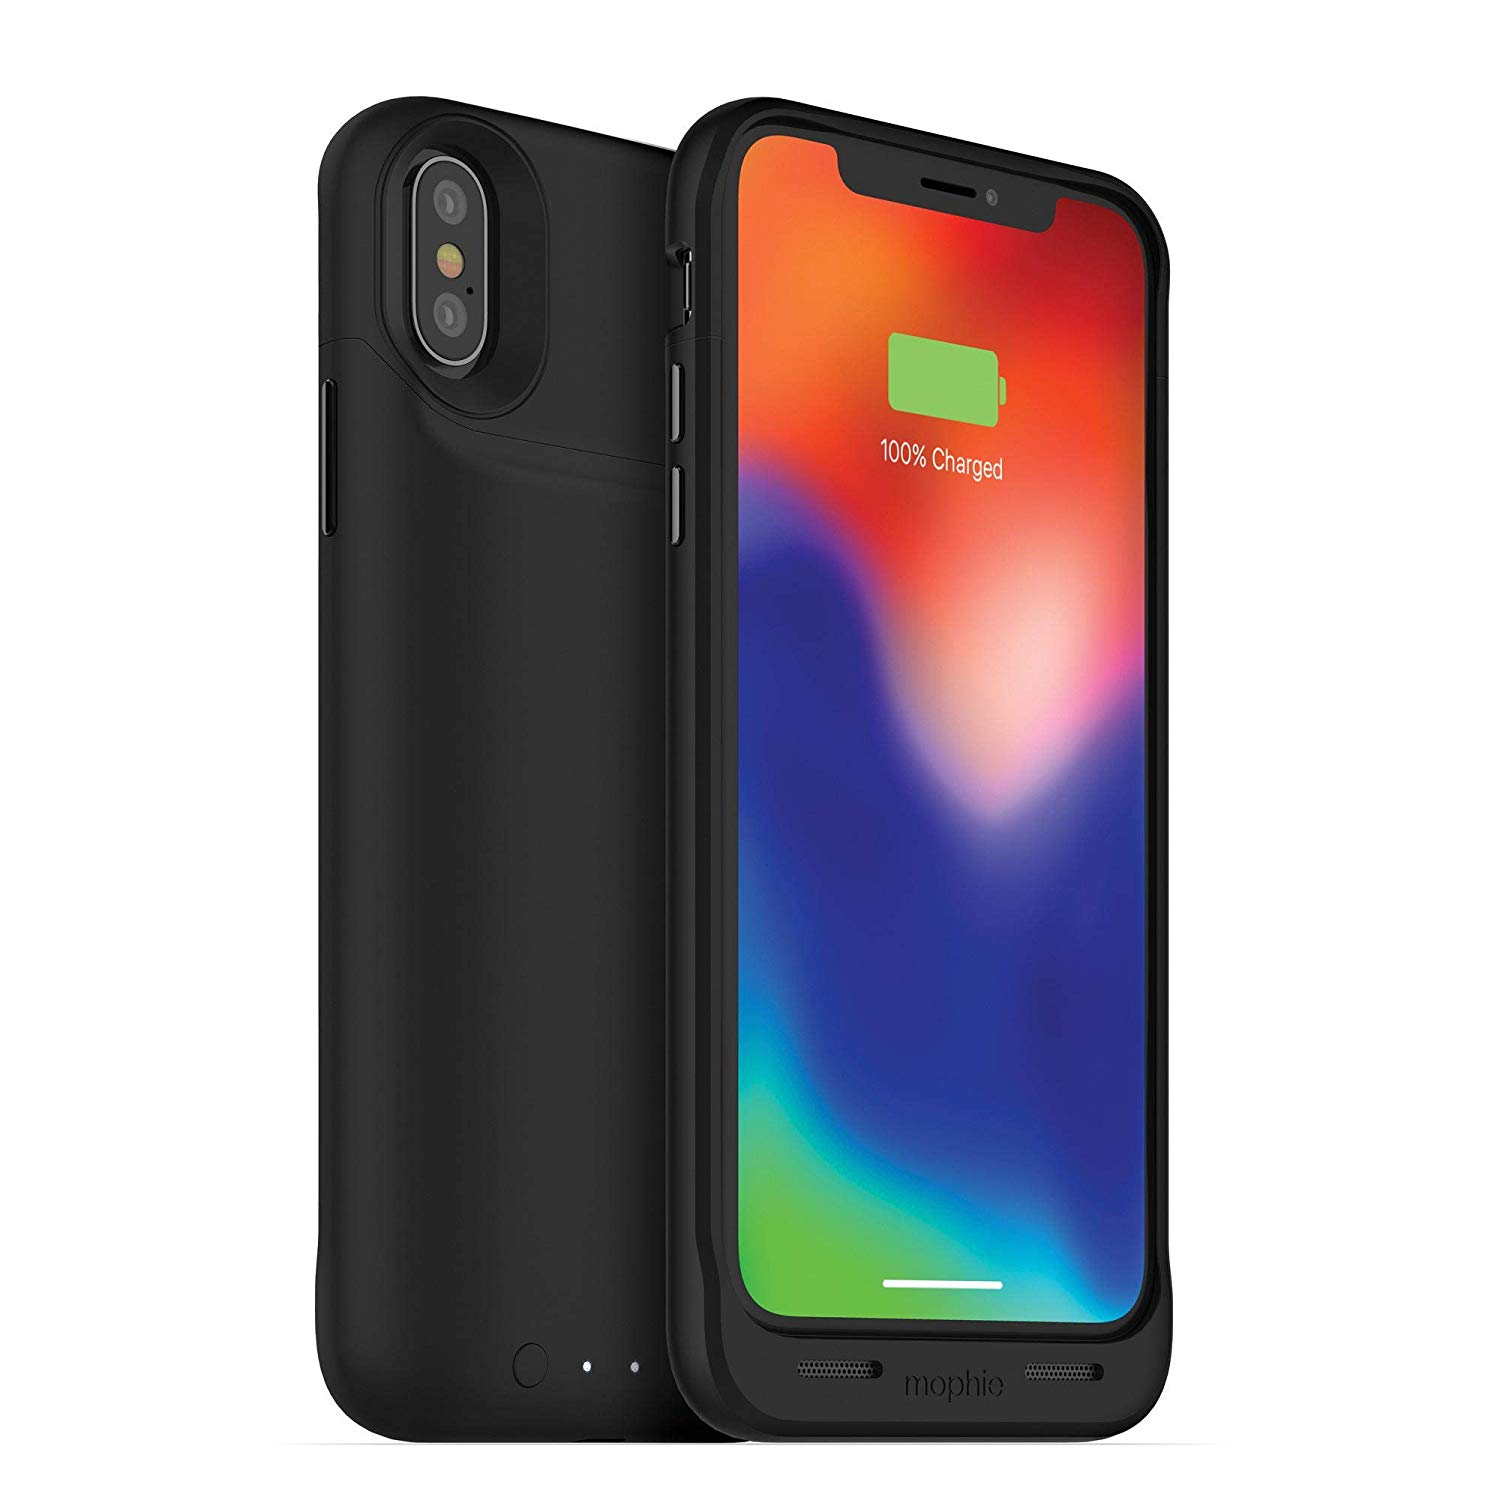 Mophie Juice Pack Air 1 720mah Battery Charging Case Qi Wireless Iphone X Black Ebay I love this case.great for back up.i was in the market for an external battery that would keep up with my phone with all i do, love the fact that i wont have to worry when my phone battery is low, only. ebay